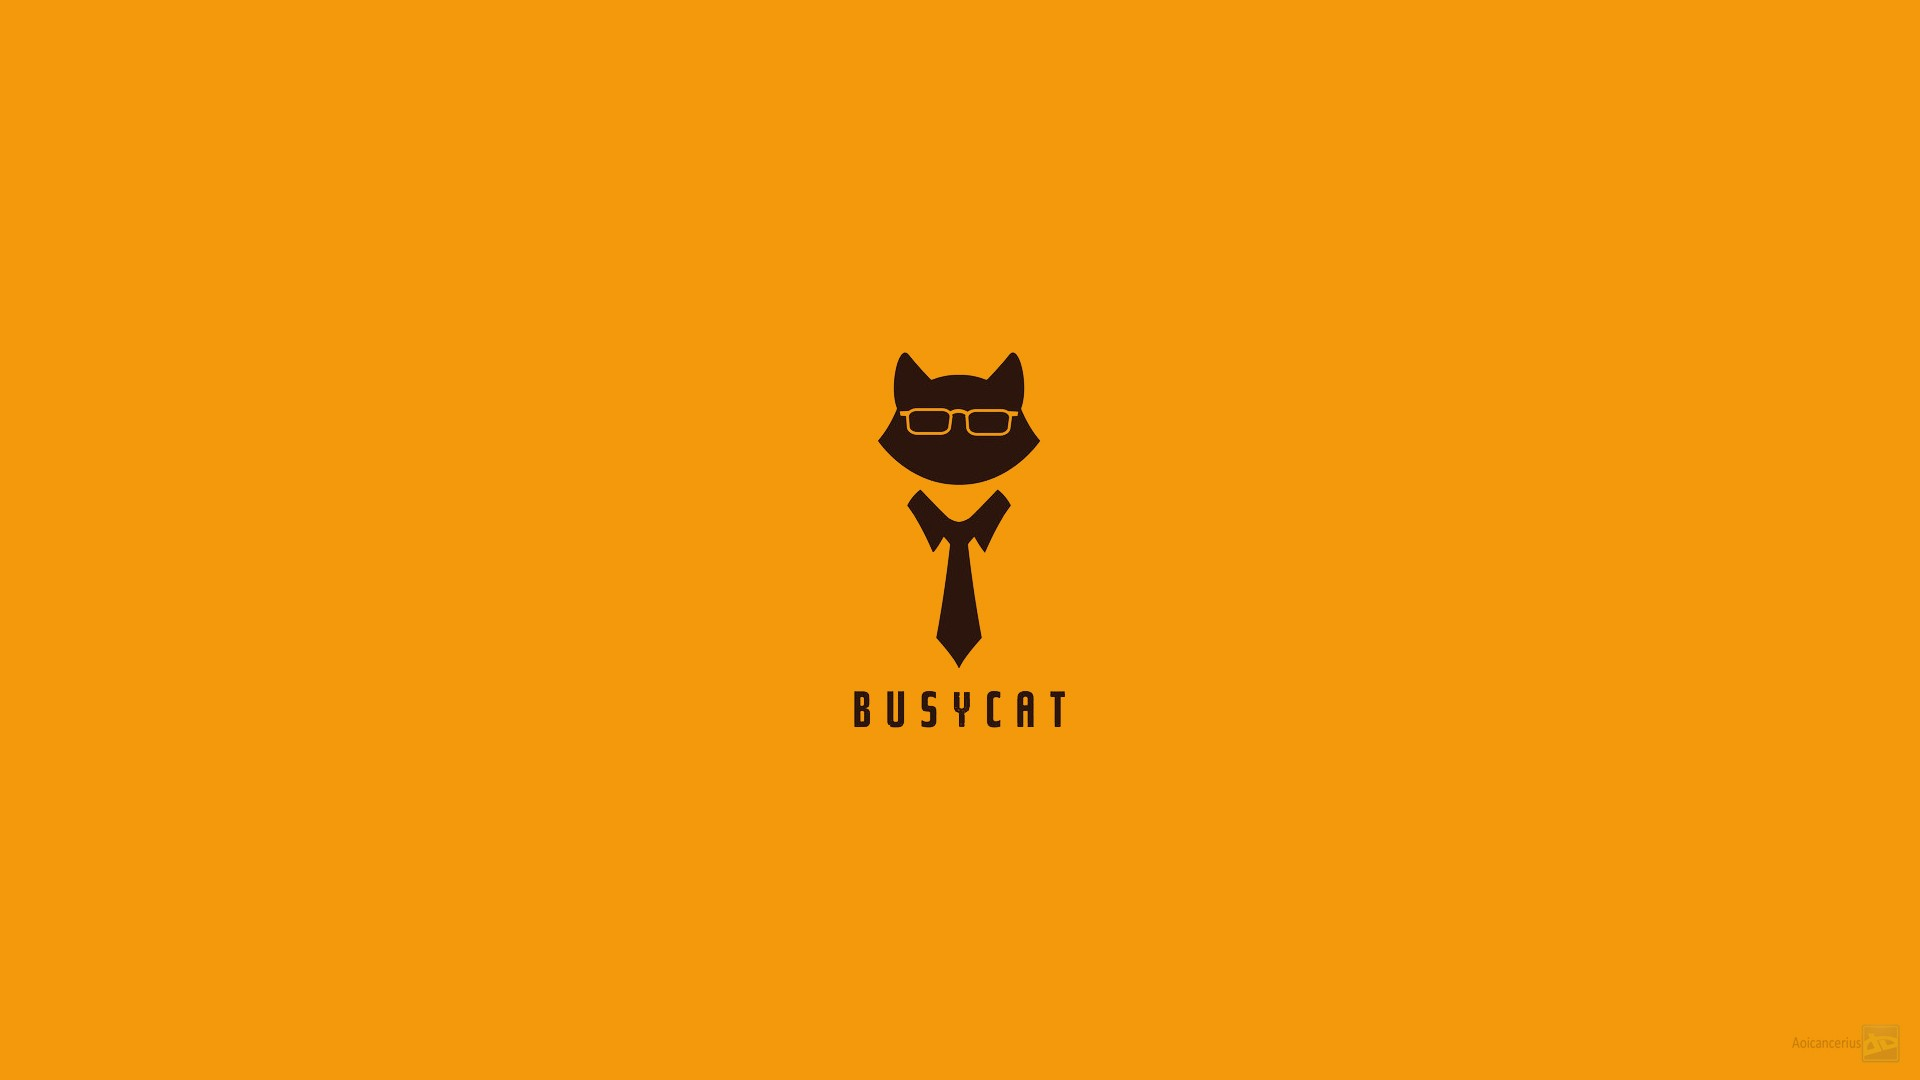 orange background poster tie cats minimalism artwork business cat simple background